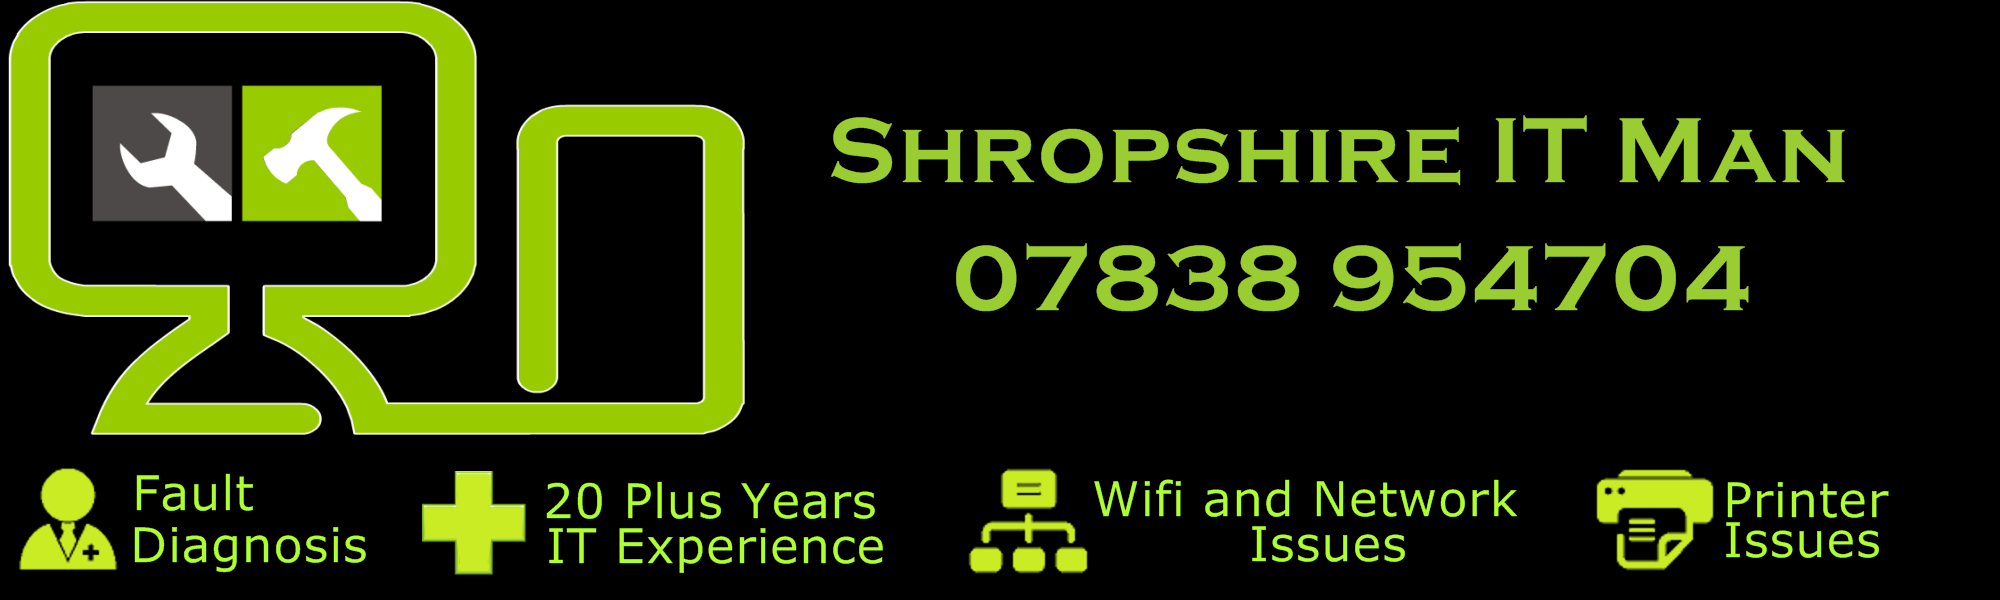 Shropshire IT Man Computer repairs in Shrewsbury and the surrounding areas